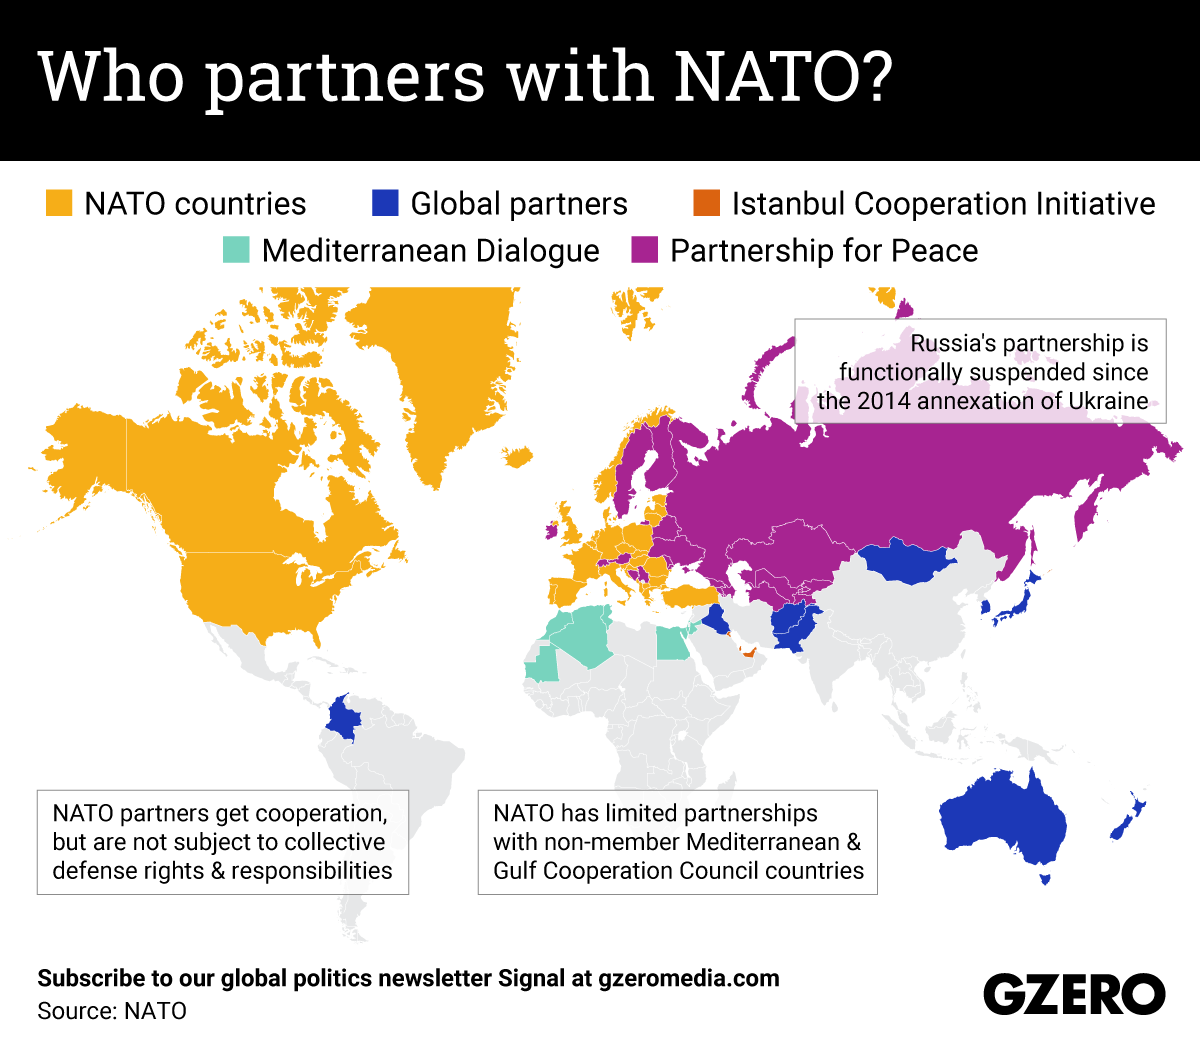 The Graphic Truth: Who partners with NATO?